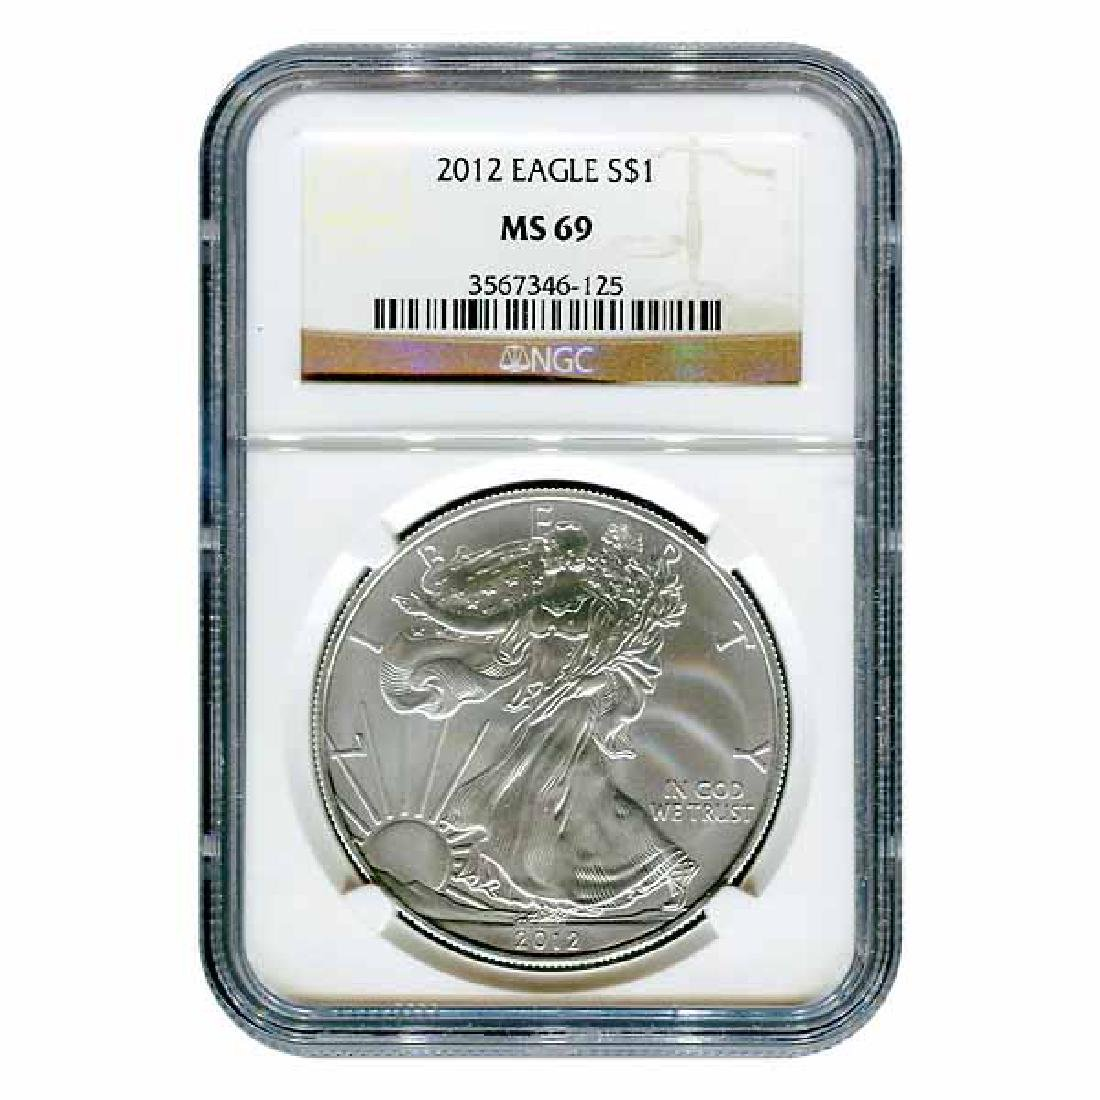 Certified Uncirculated Silver Eagle 2012 MS69 NGC